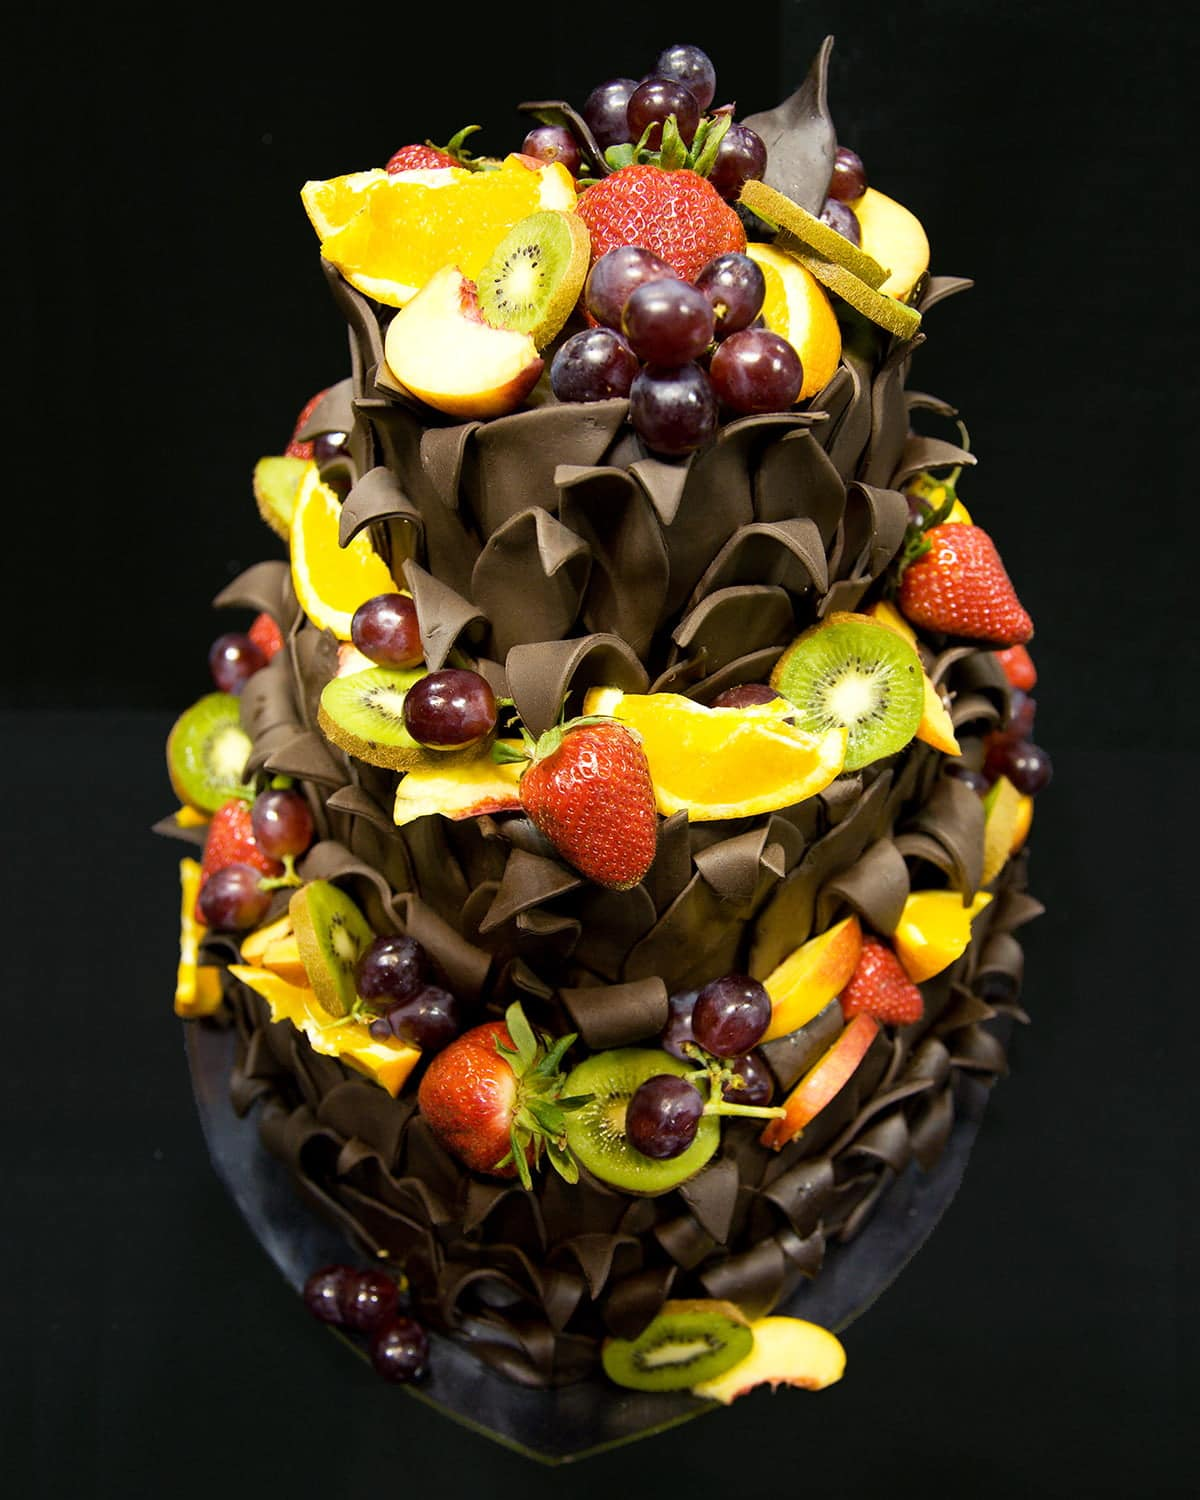 A three tiered, heart shaped cake. The sides are covered in chocolate leaves that are curling downwards, and each later is topped with a variety of fresh fruit.